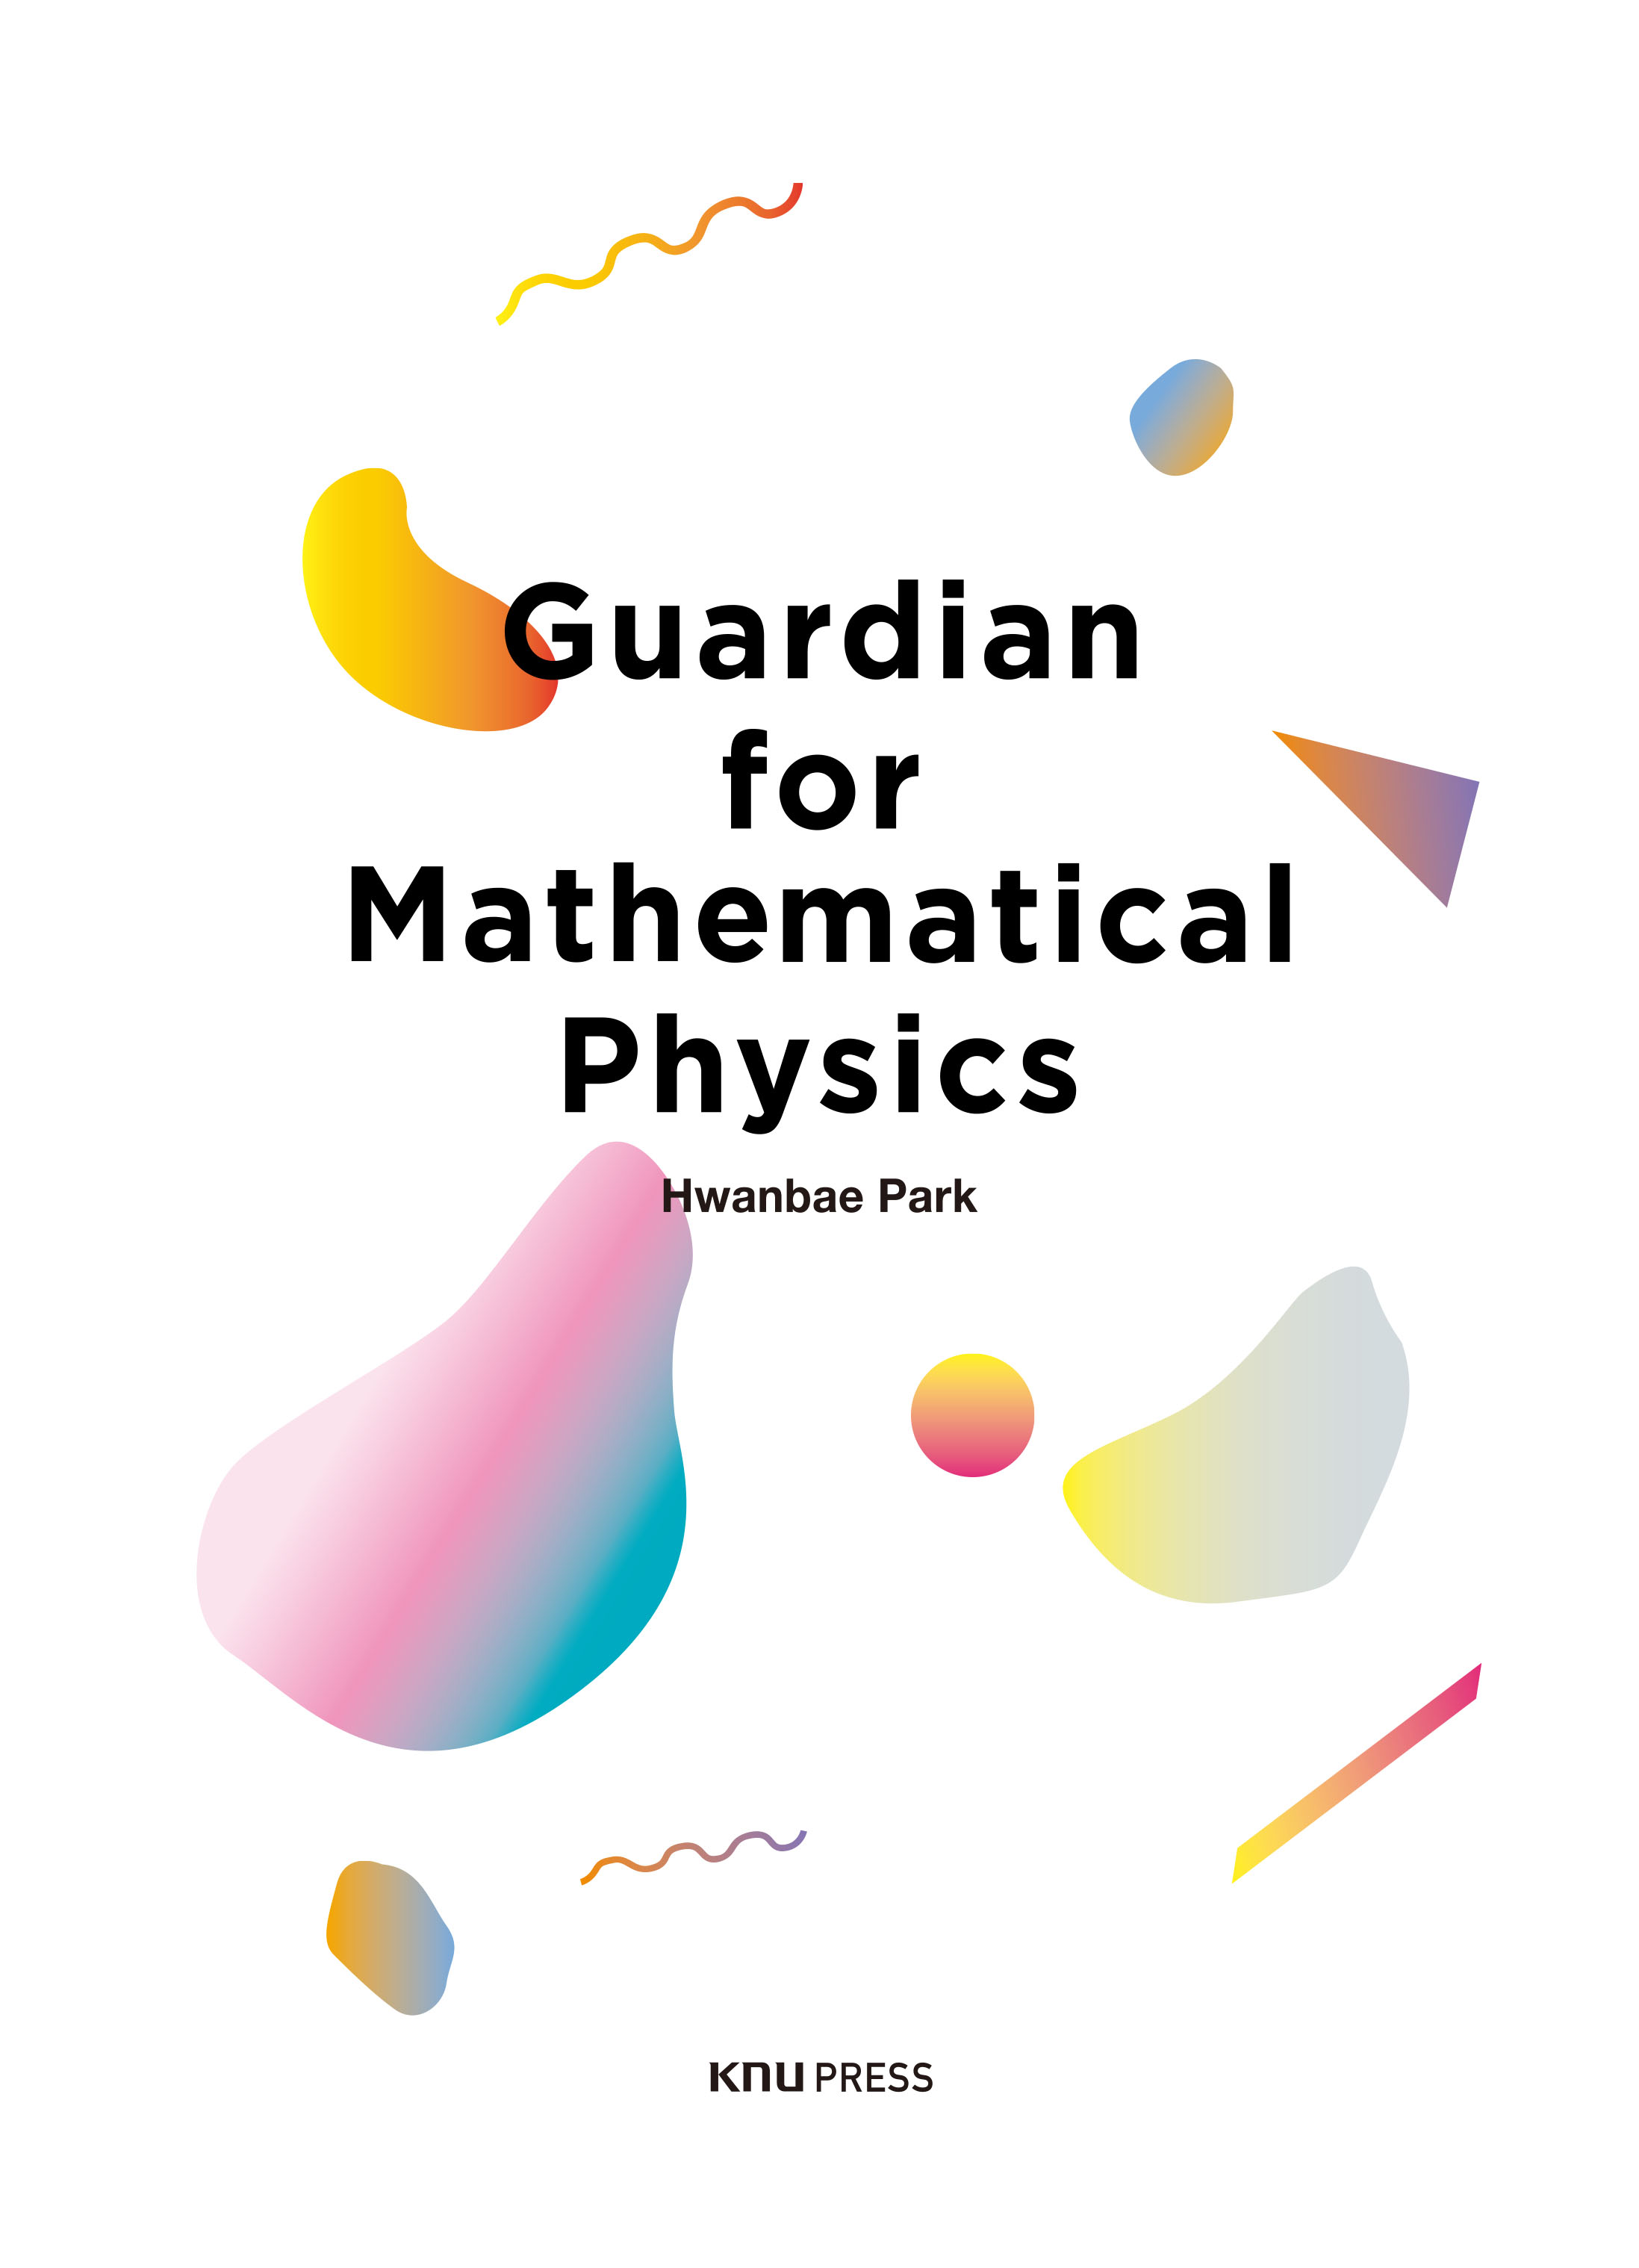 Guardian for Mathematical Physics